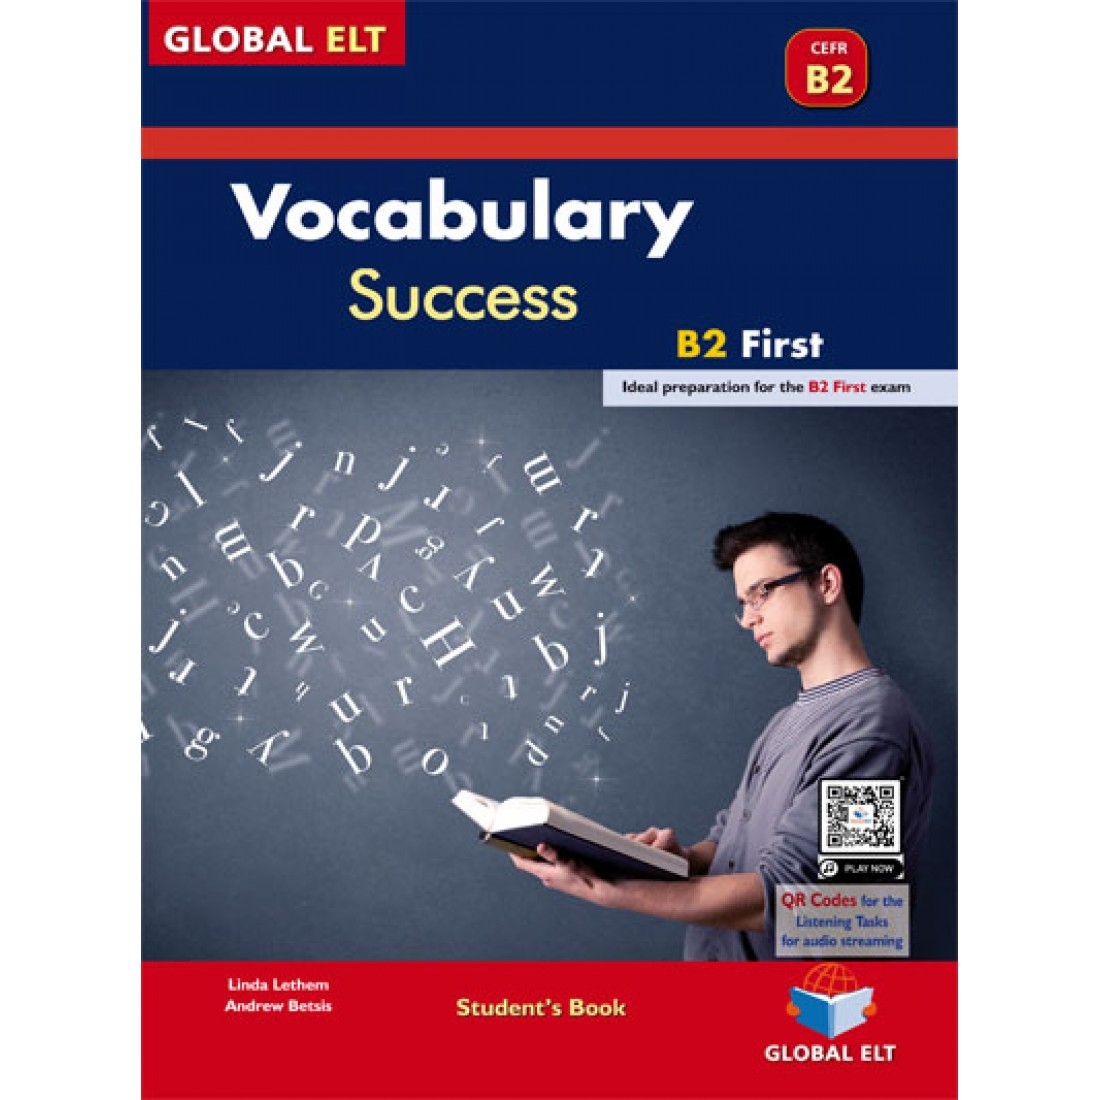 Vocabulary Success B2 First - Student's book globalelt.co.uk